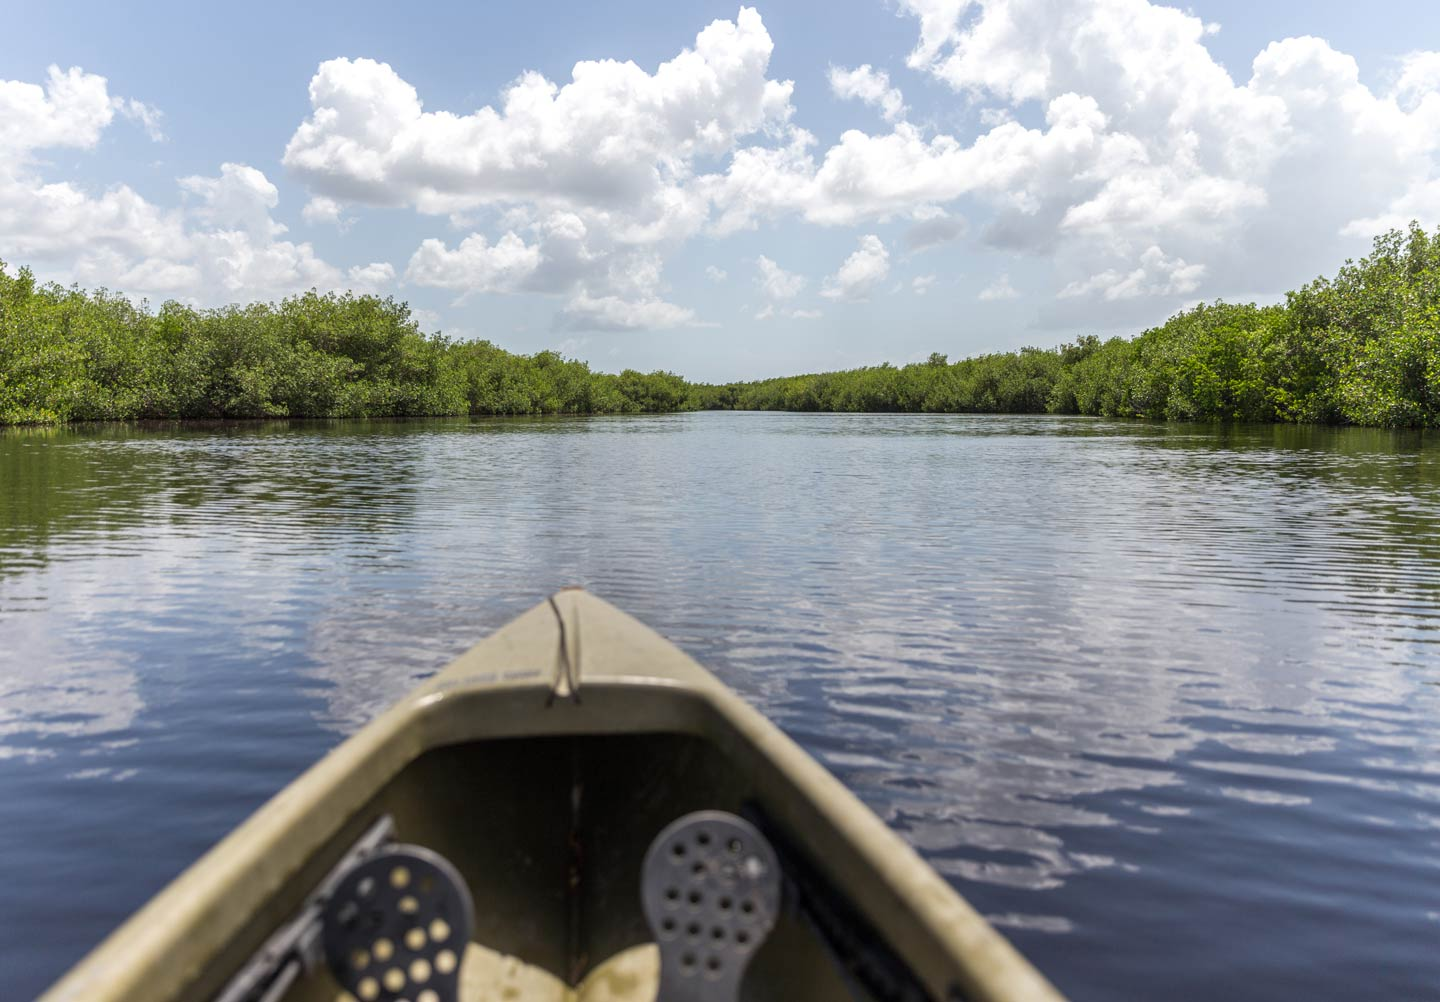 A kayak overlooking the wetlands in the Everglades, Florida